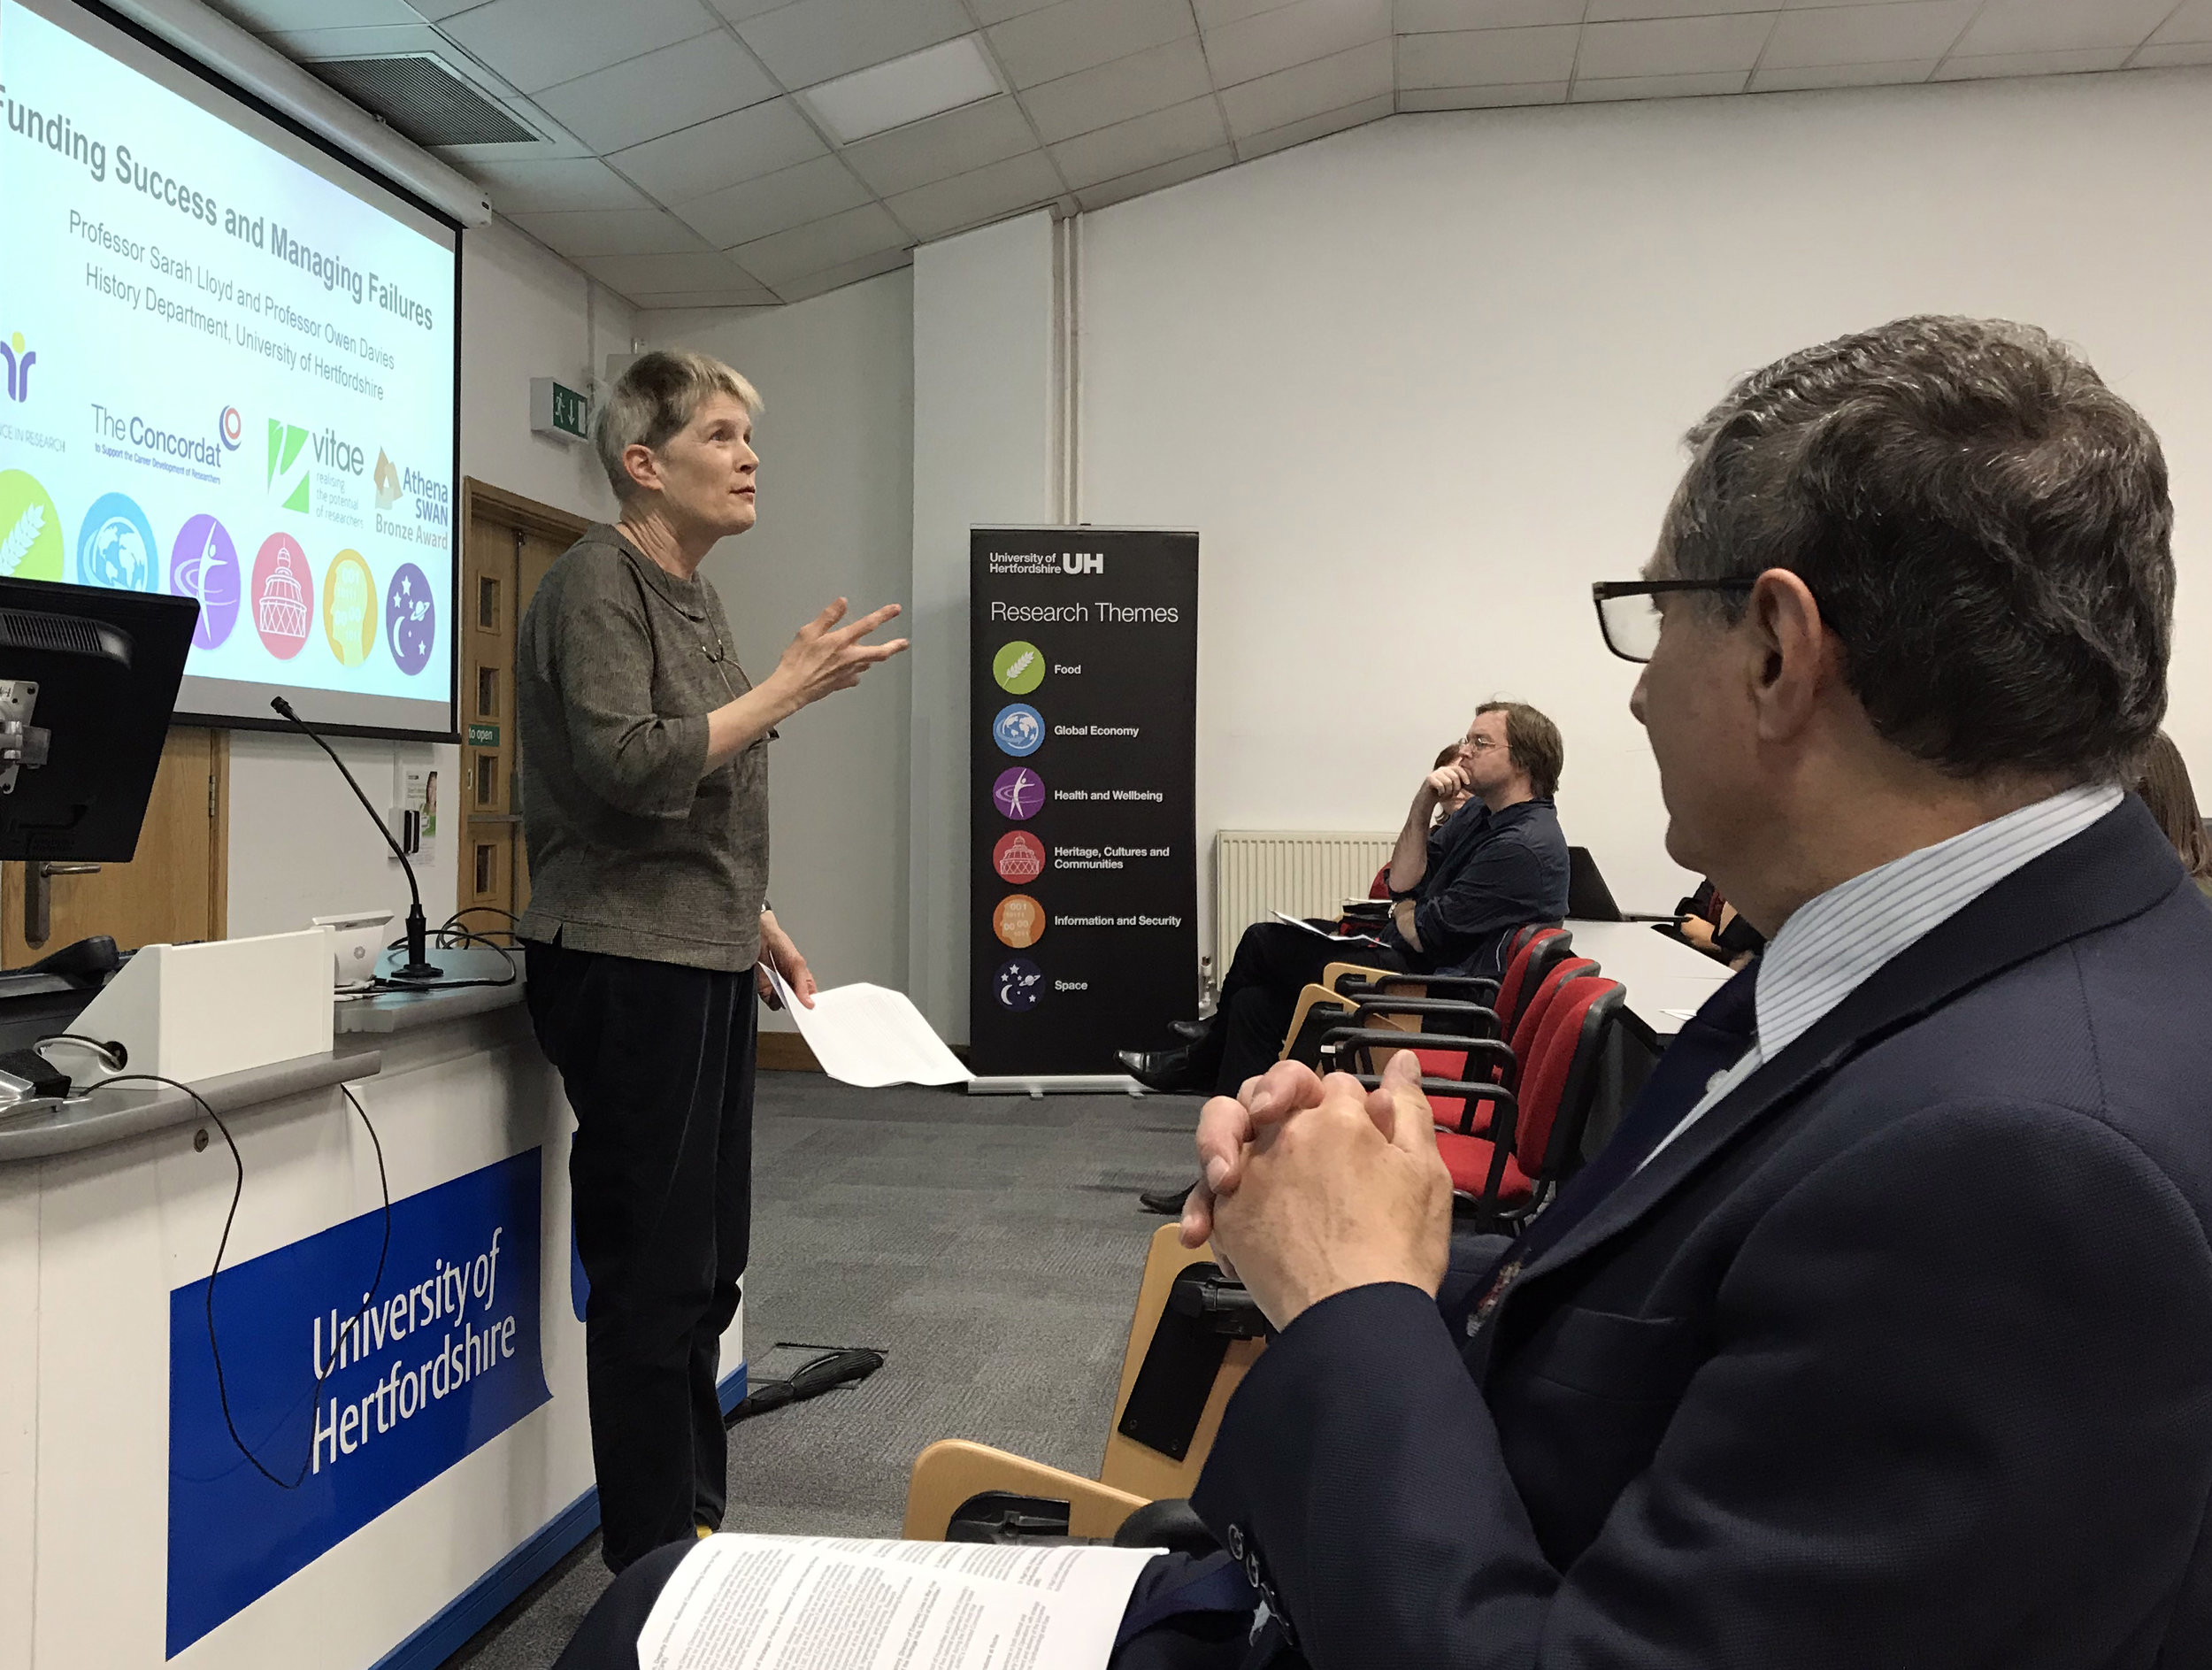 - Prof Sarah Lloyd discussing research funding successes and failures with Prof Owen Davies (centre) and Prof John Senior (right).